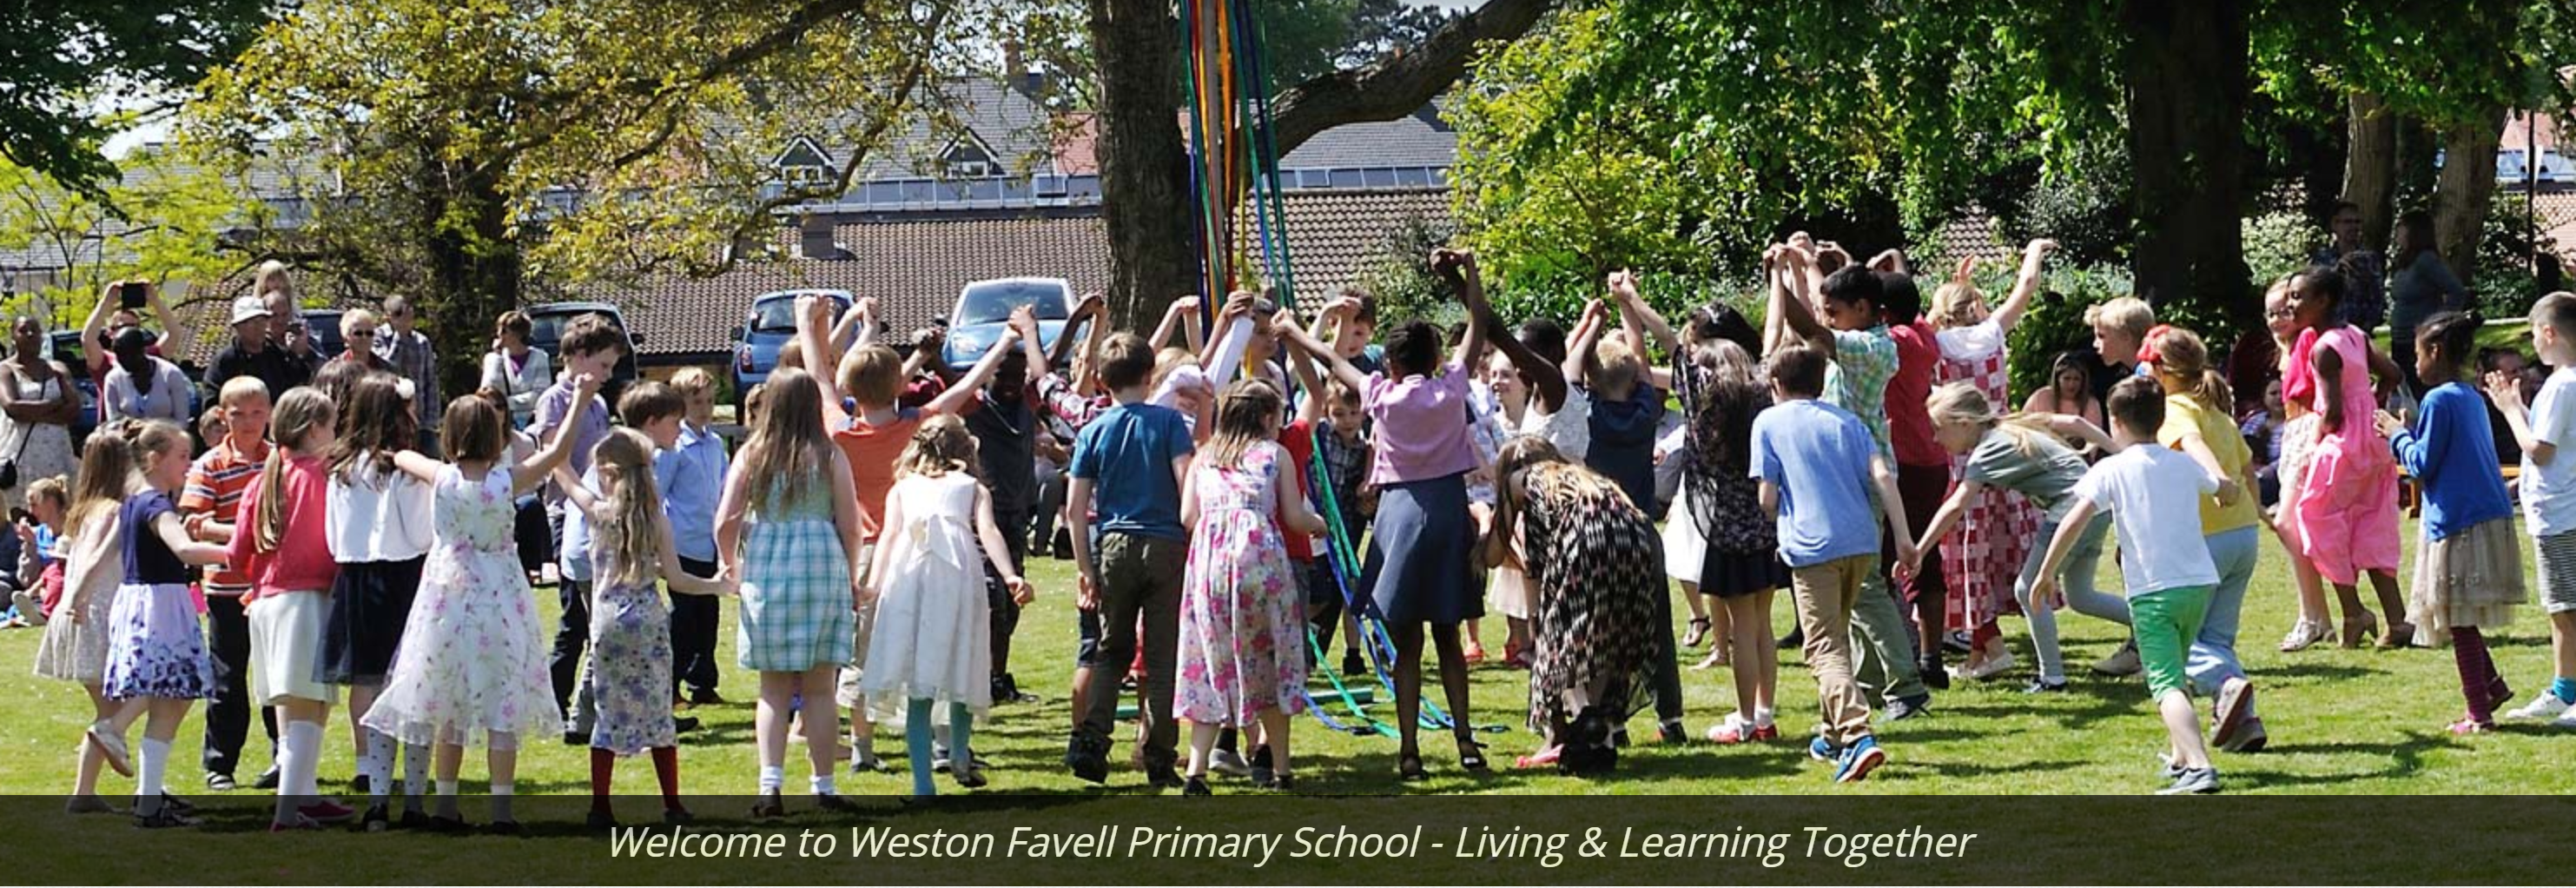 Weston Favell Primary School Blogs